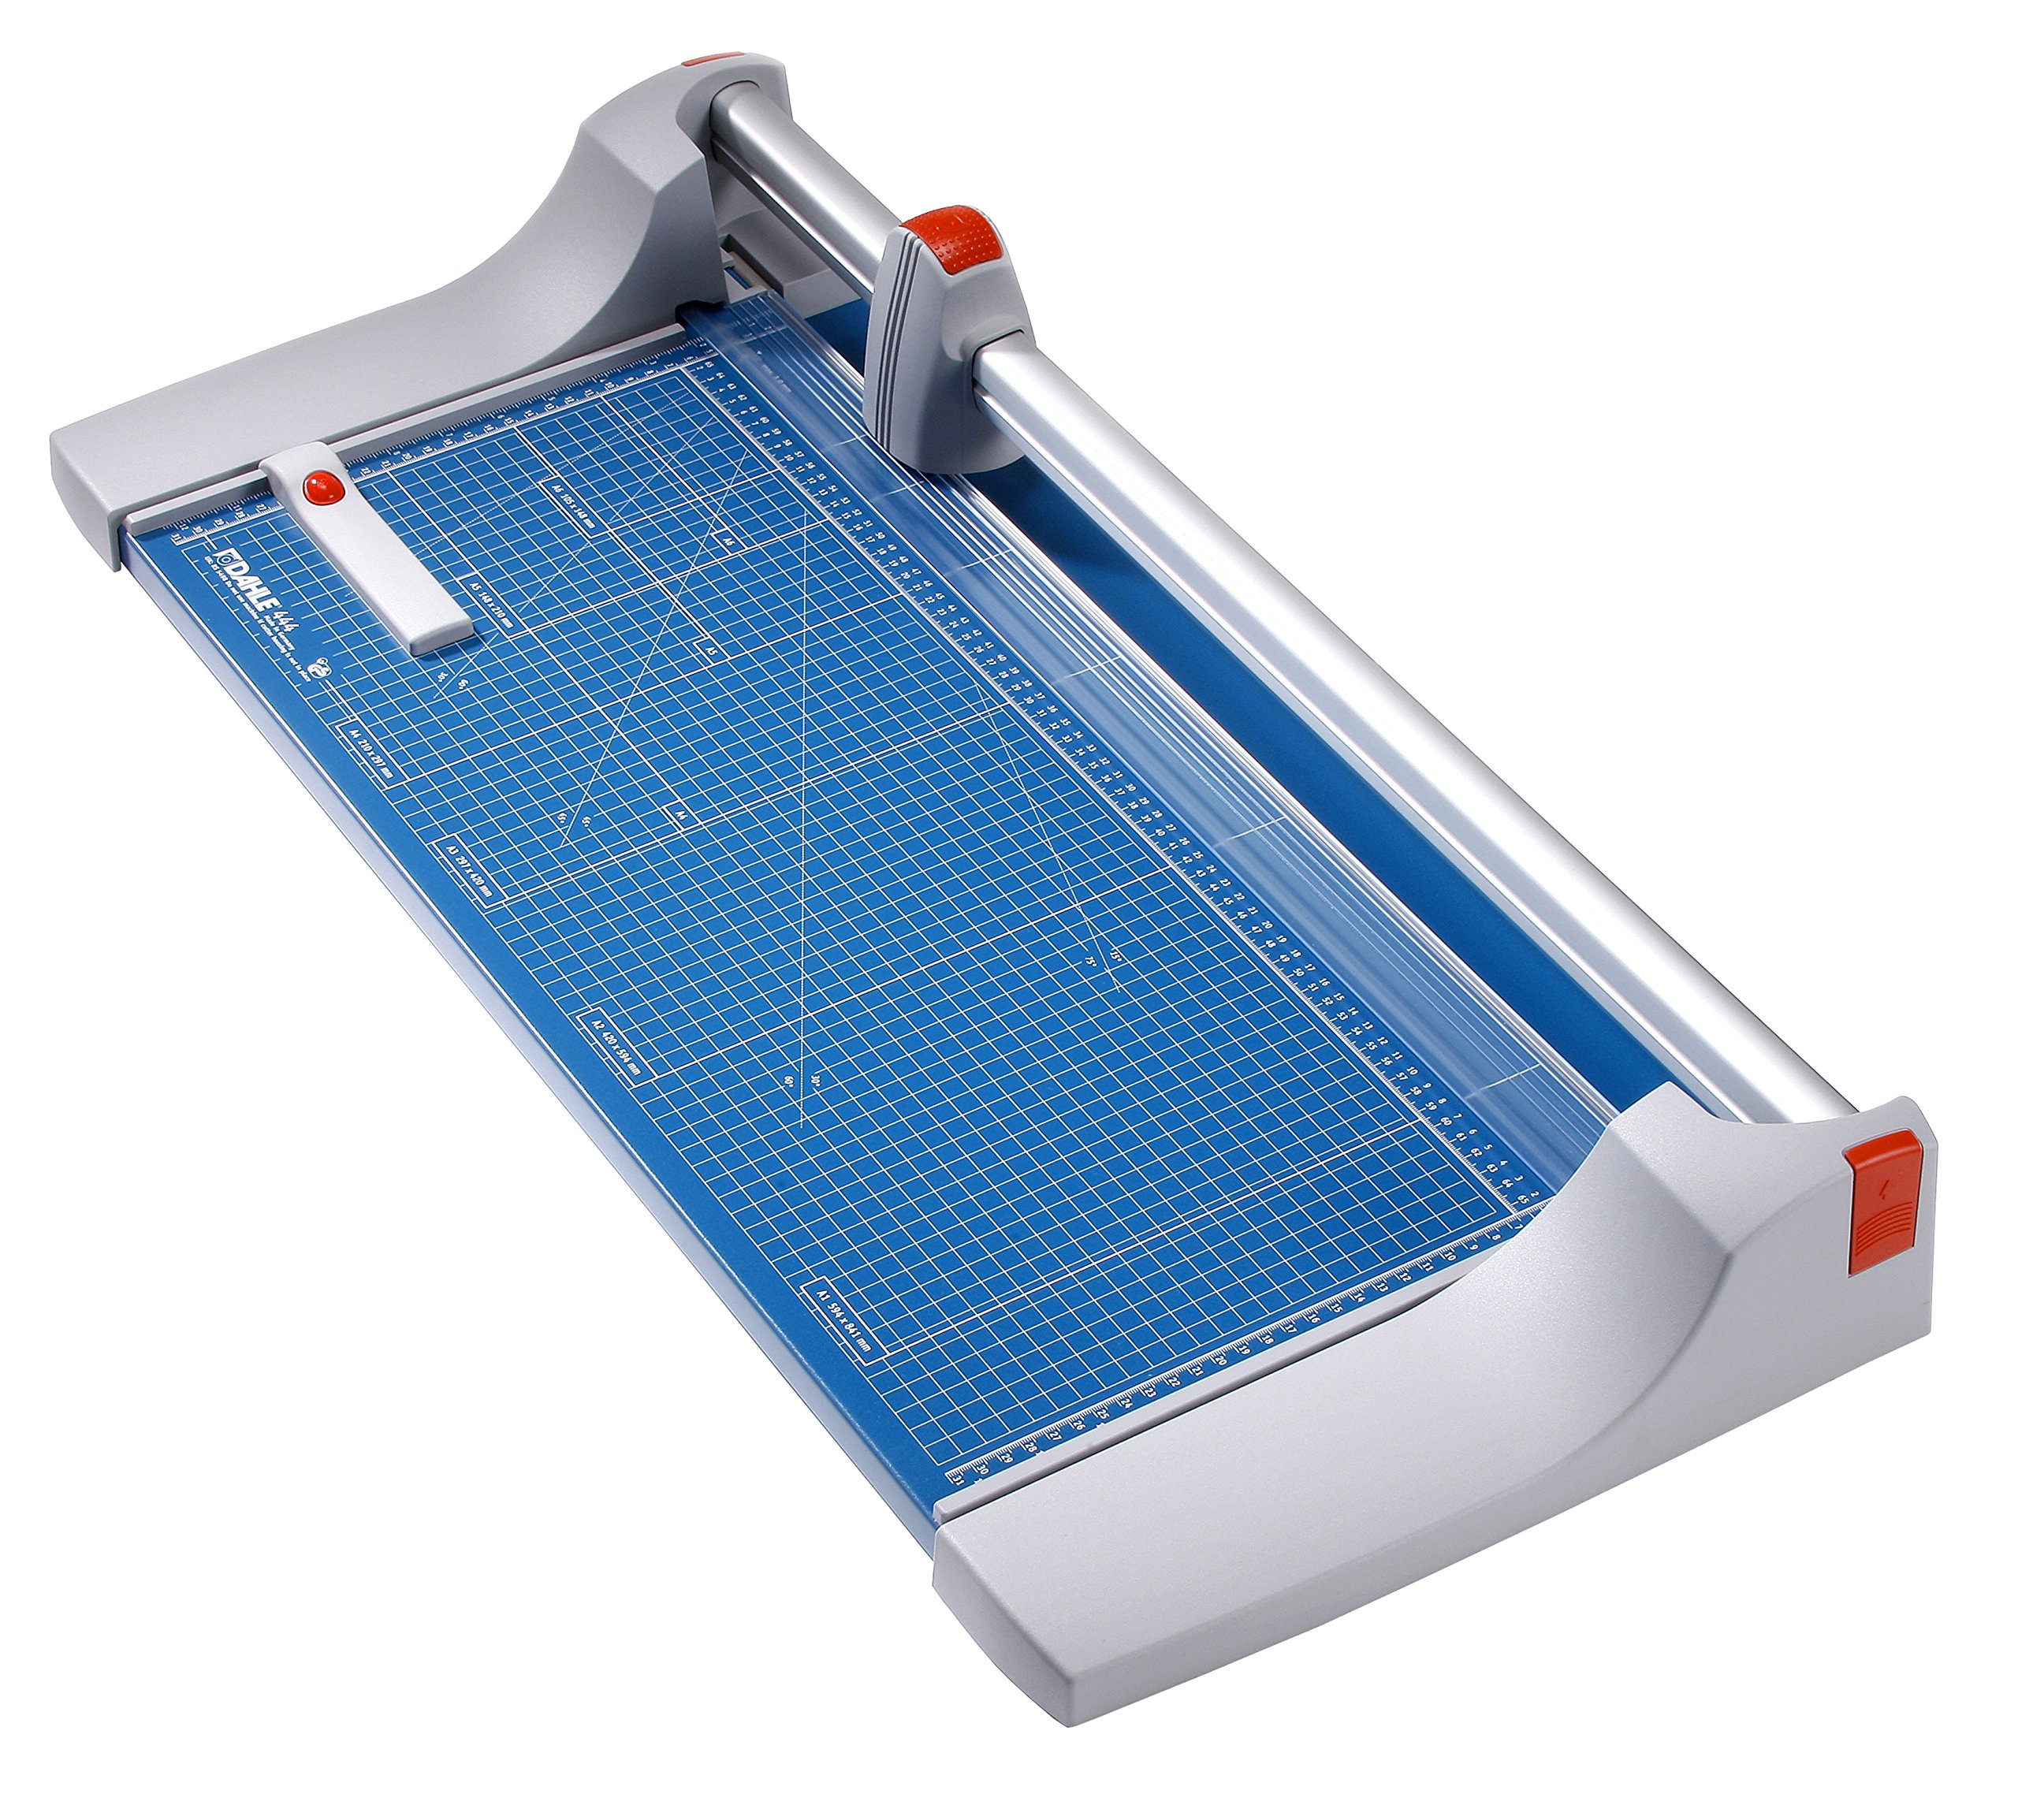 Dahle 444 Premium Rolling Trimmer, 26 3/8'' Cut Length, 25 Sheet, Self Sharpening Blade, Cuts in Either Direction, Automatic Paper Clamp Metal Base, Paper Cutter